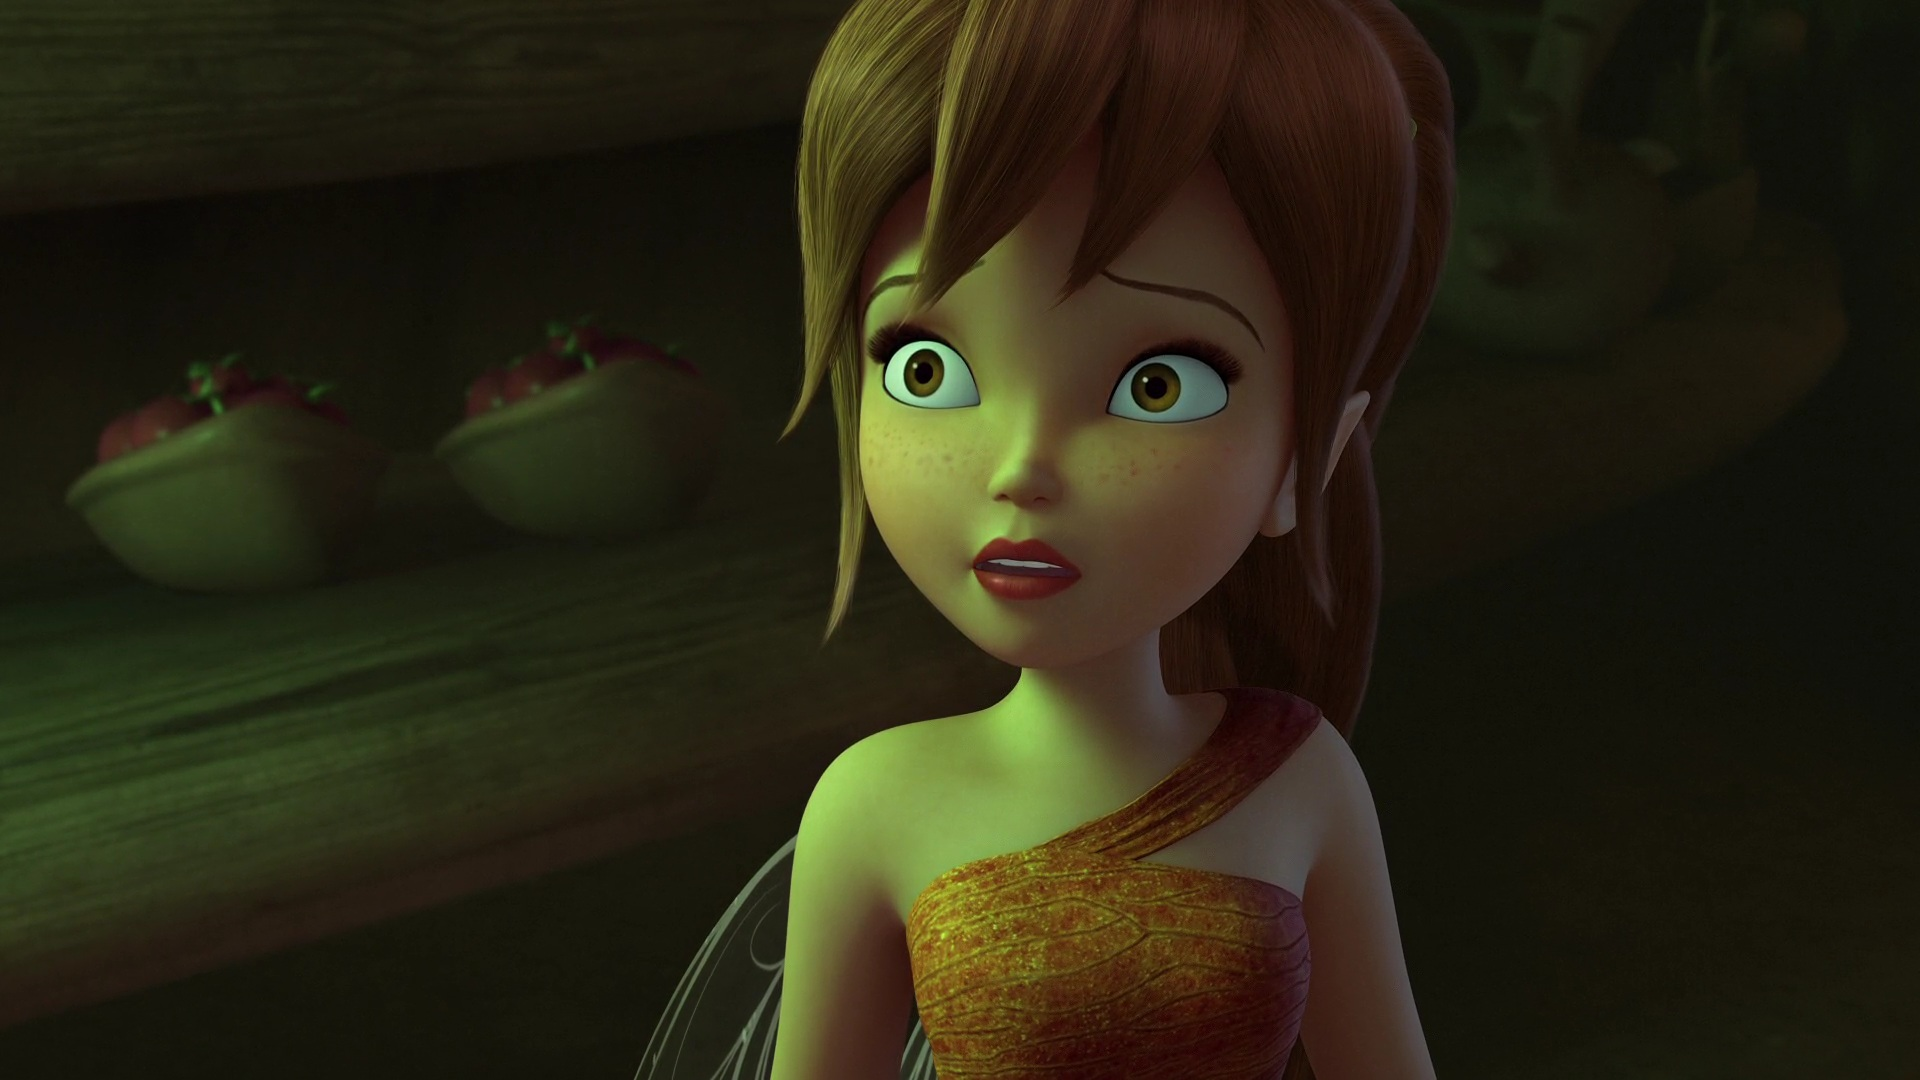 Fawn in 'The Legend of the NeverBeast'